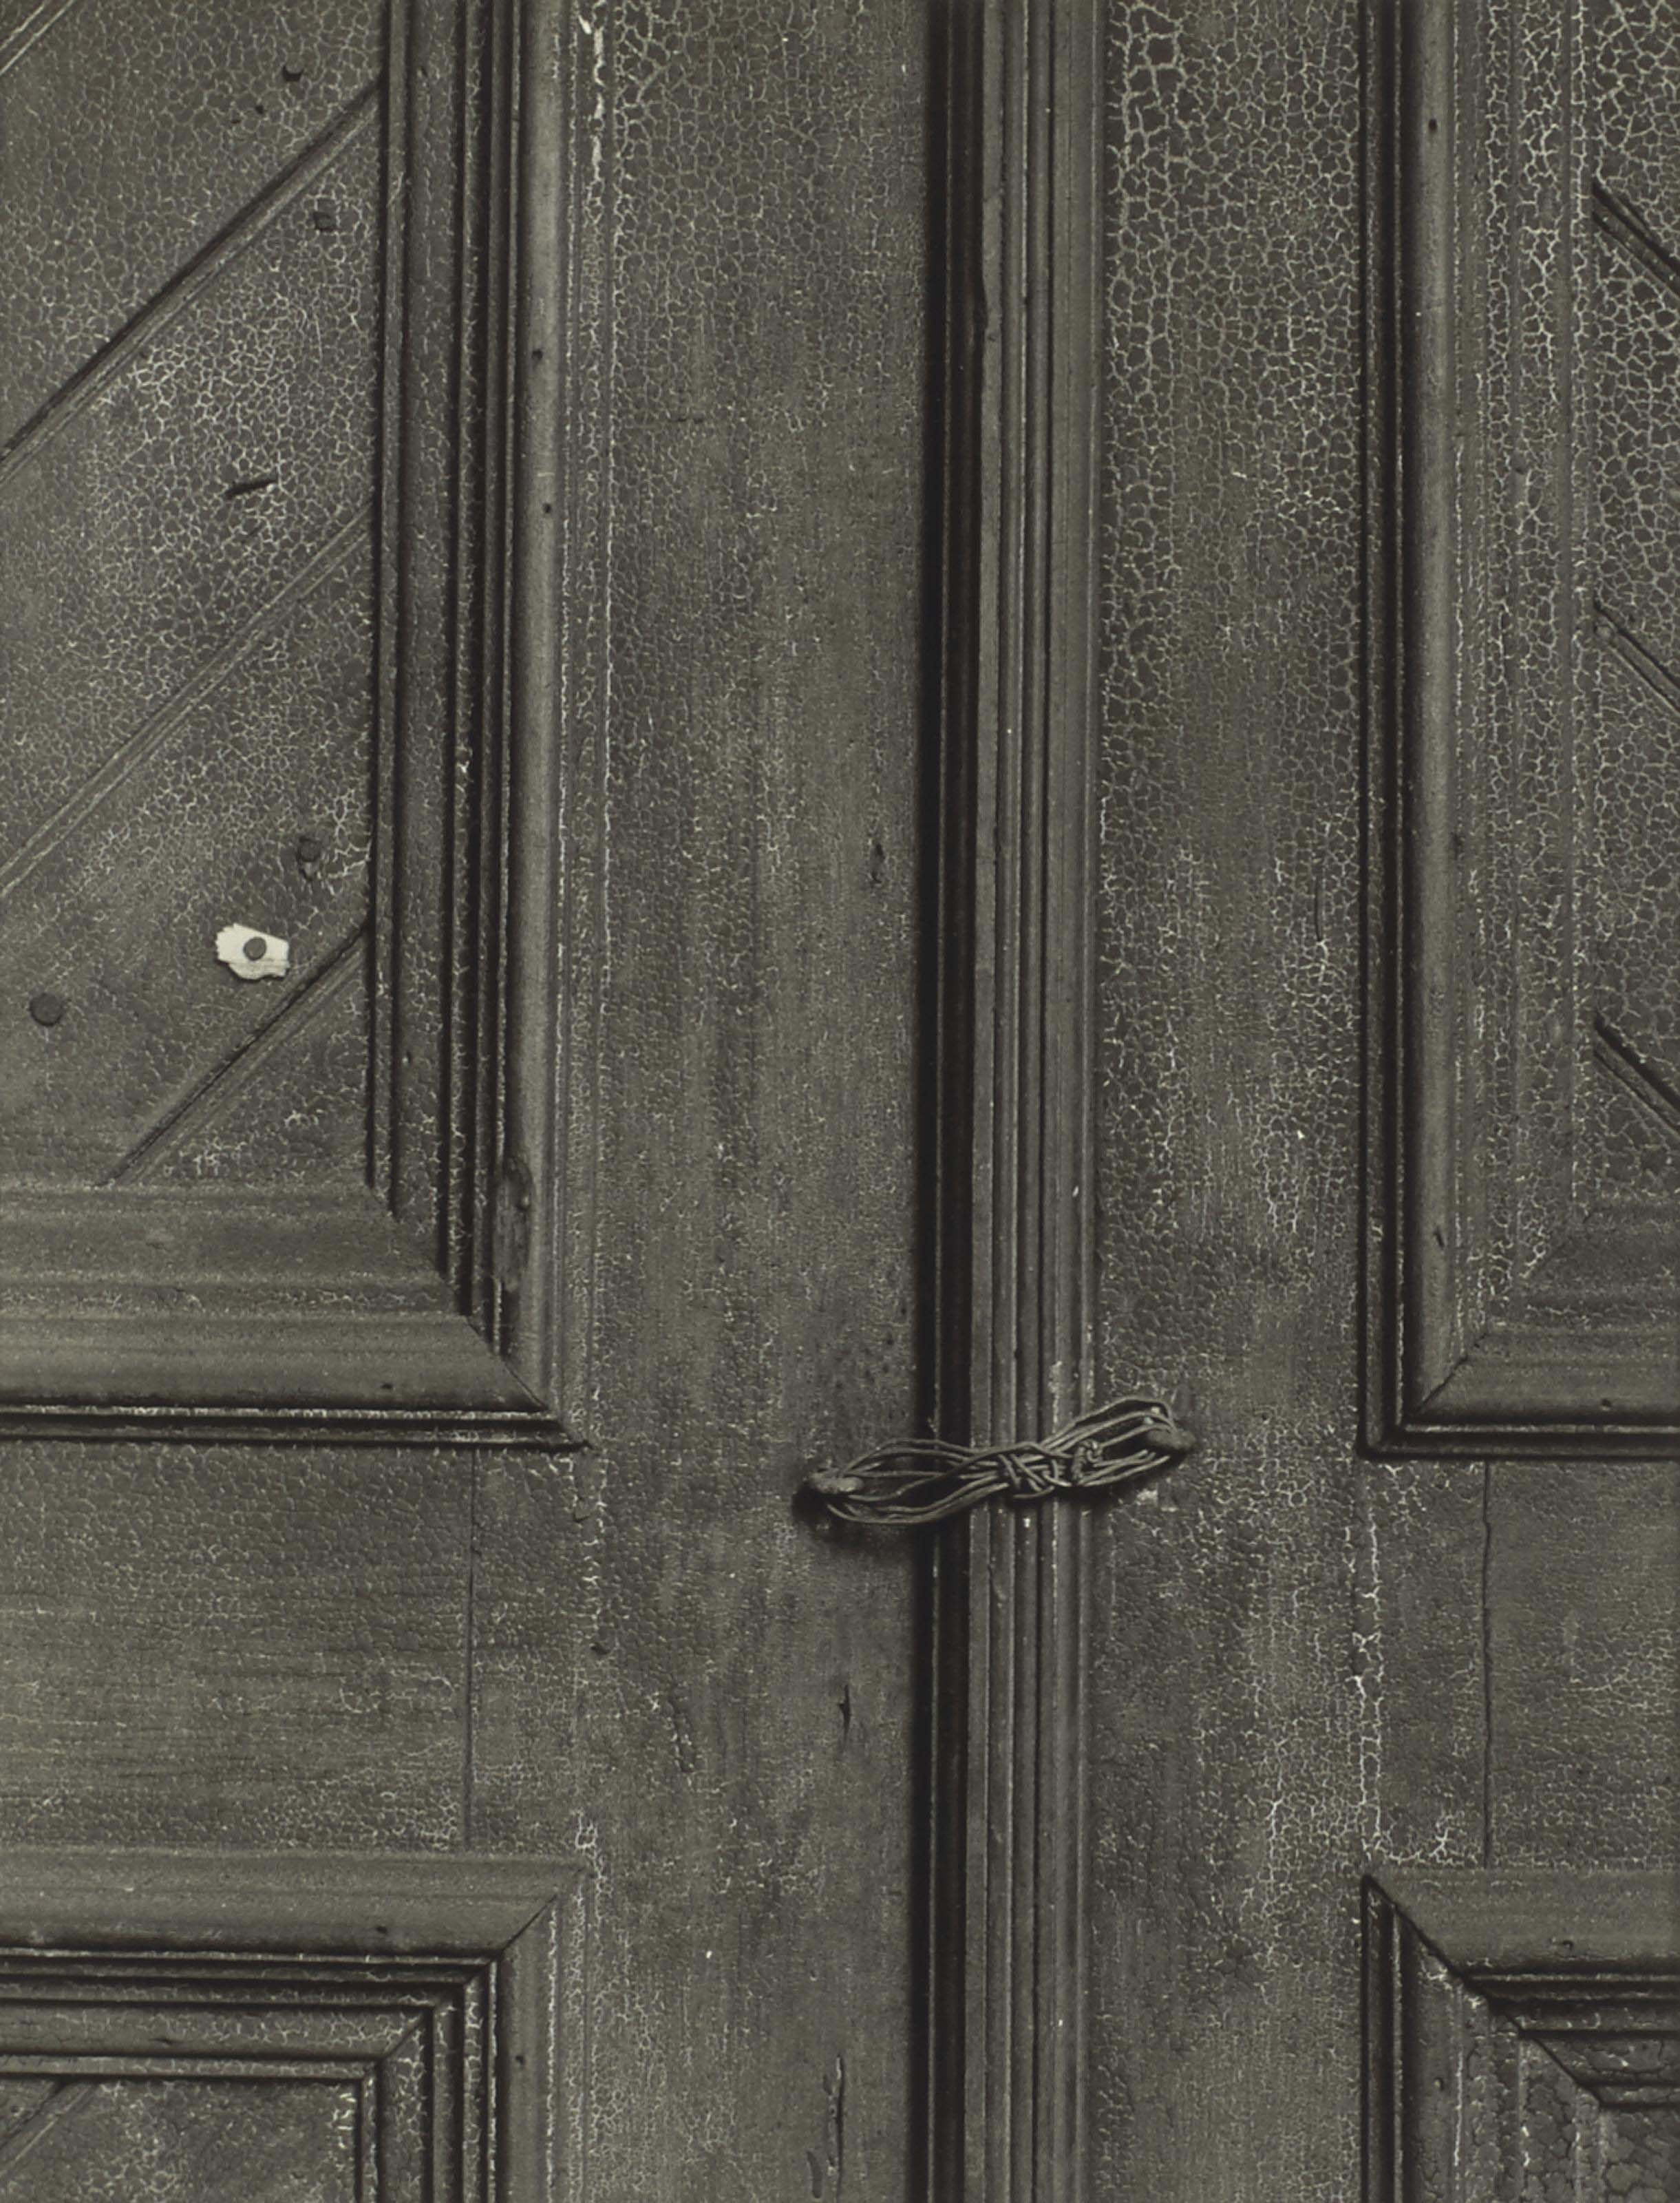 Untitled (Door with Wire), vers 1940